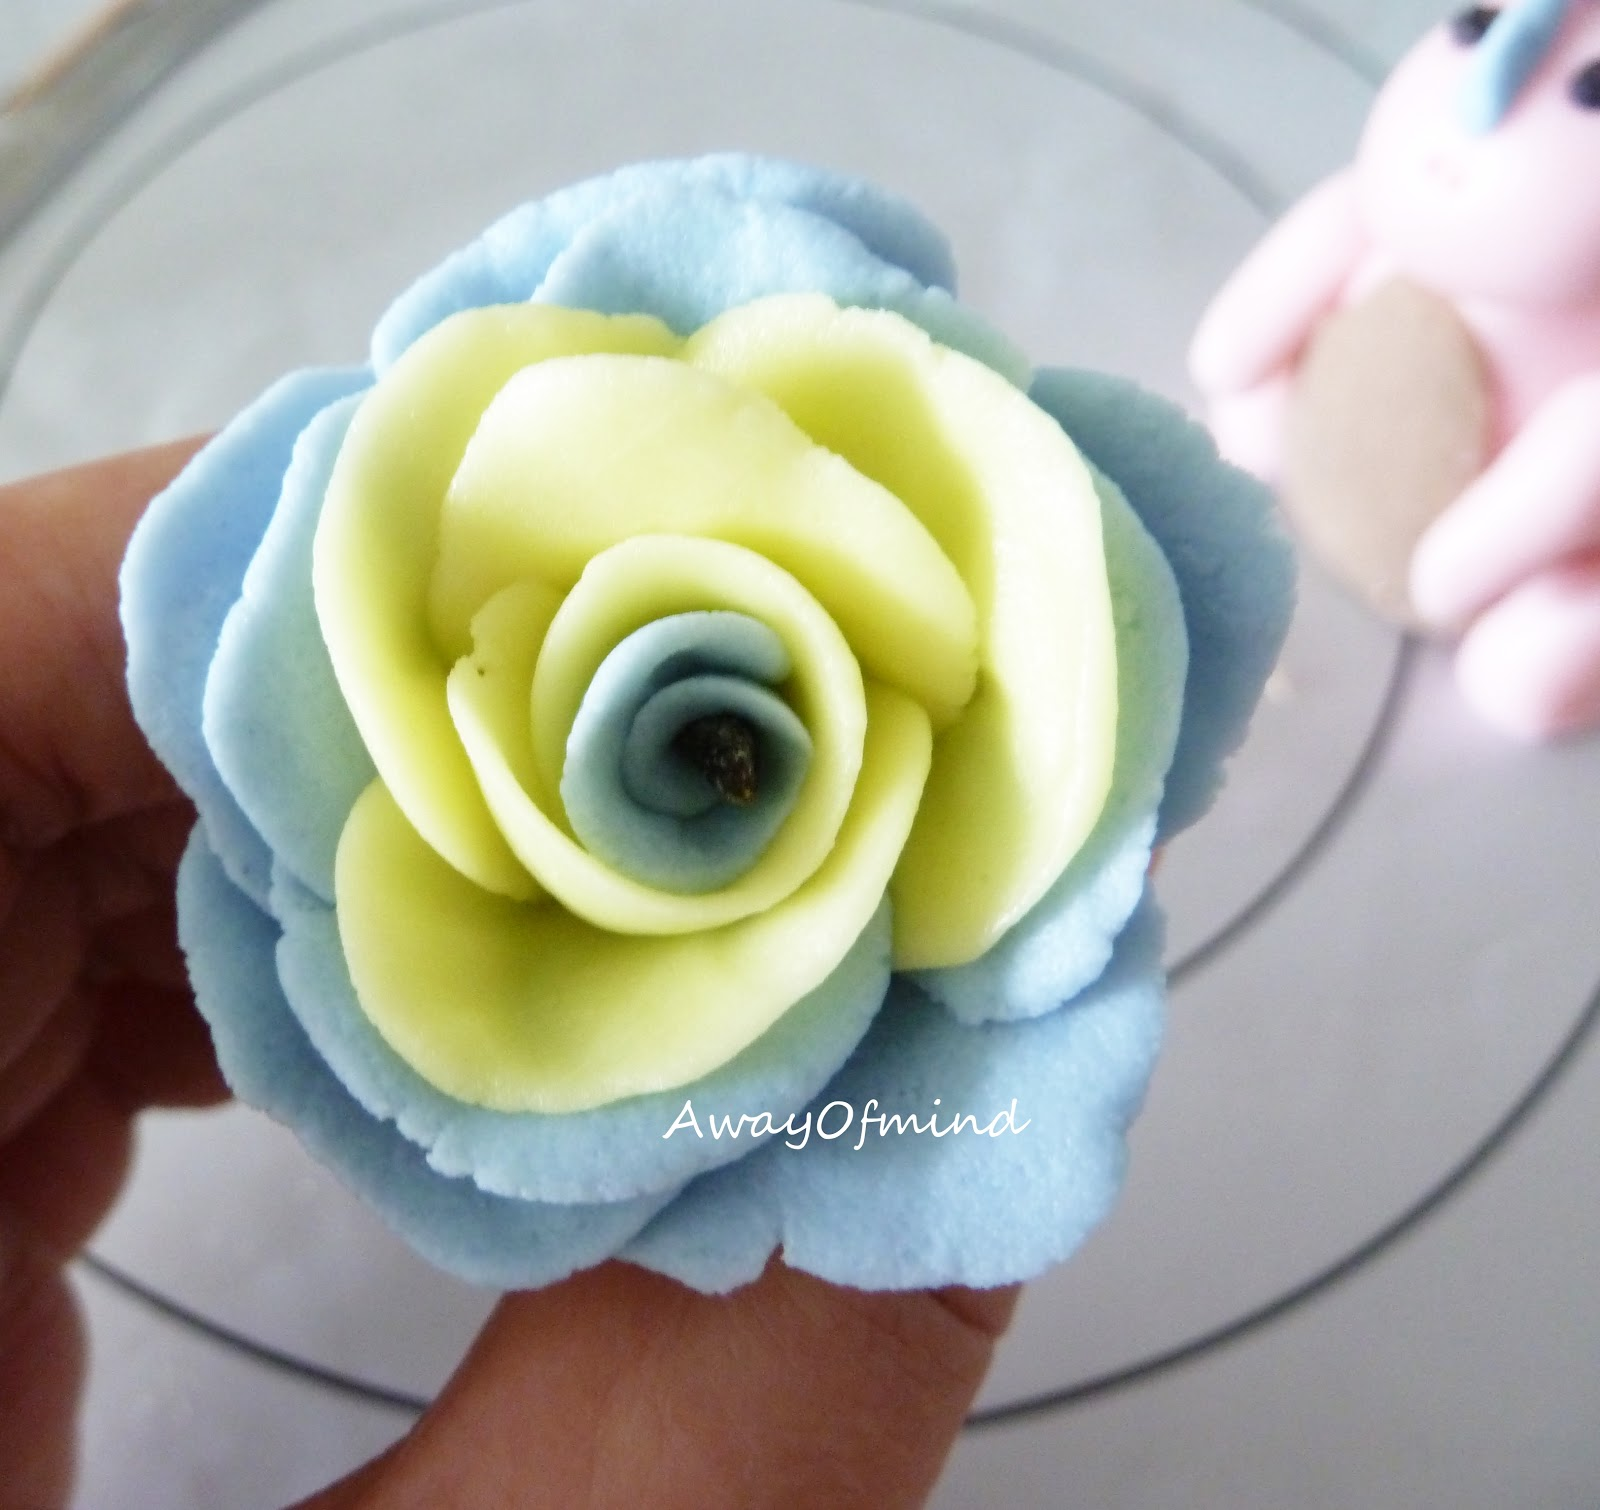 Awayofmind bakery house dinosaur fondant success the leftover fondant make into a flower the blue fondant is mixing the white fondant with blue icing colour lovely blue dhlflorist Image collections